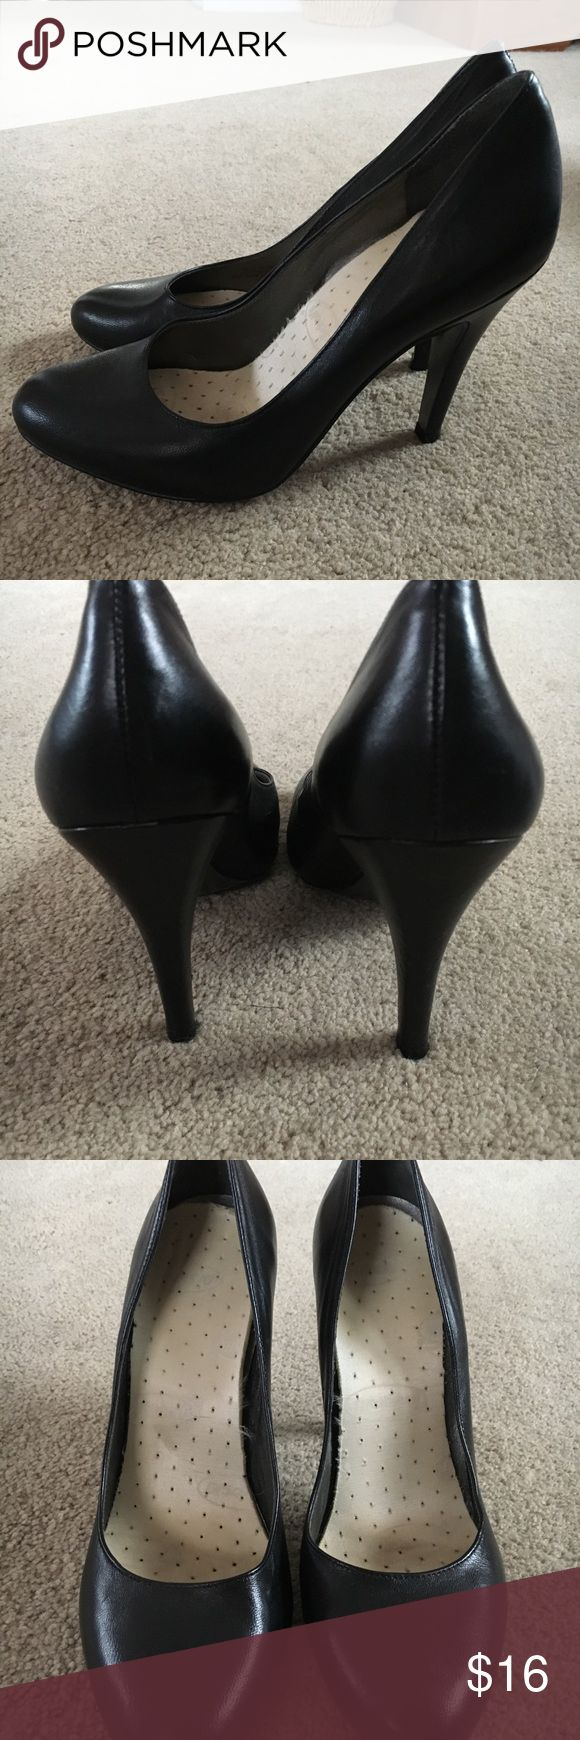 Jessica Simpson Genuine Leather Black Pumps Jessica Simpson genuine black leather pumps with Dr. Scholls gel support insert, good used condition Jessica Simpson Shoes Heels